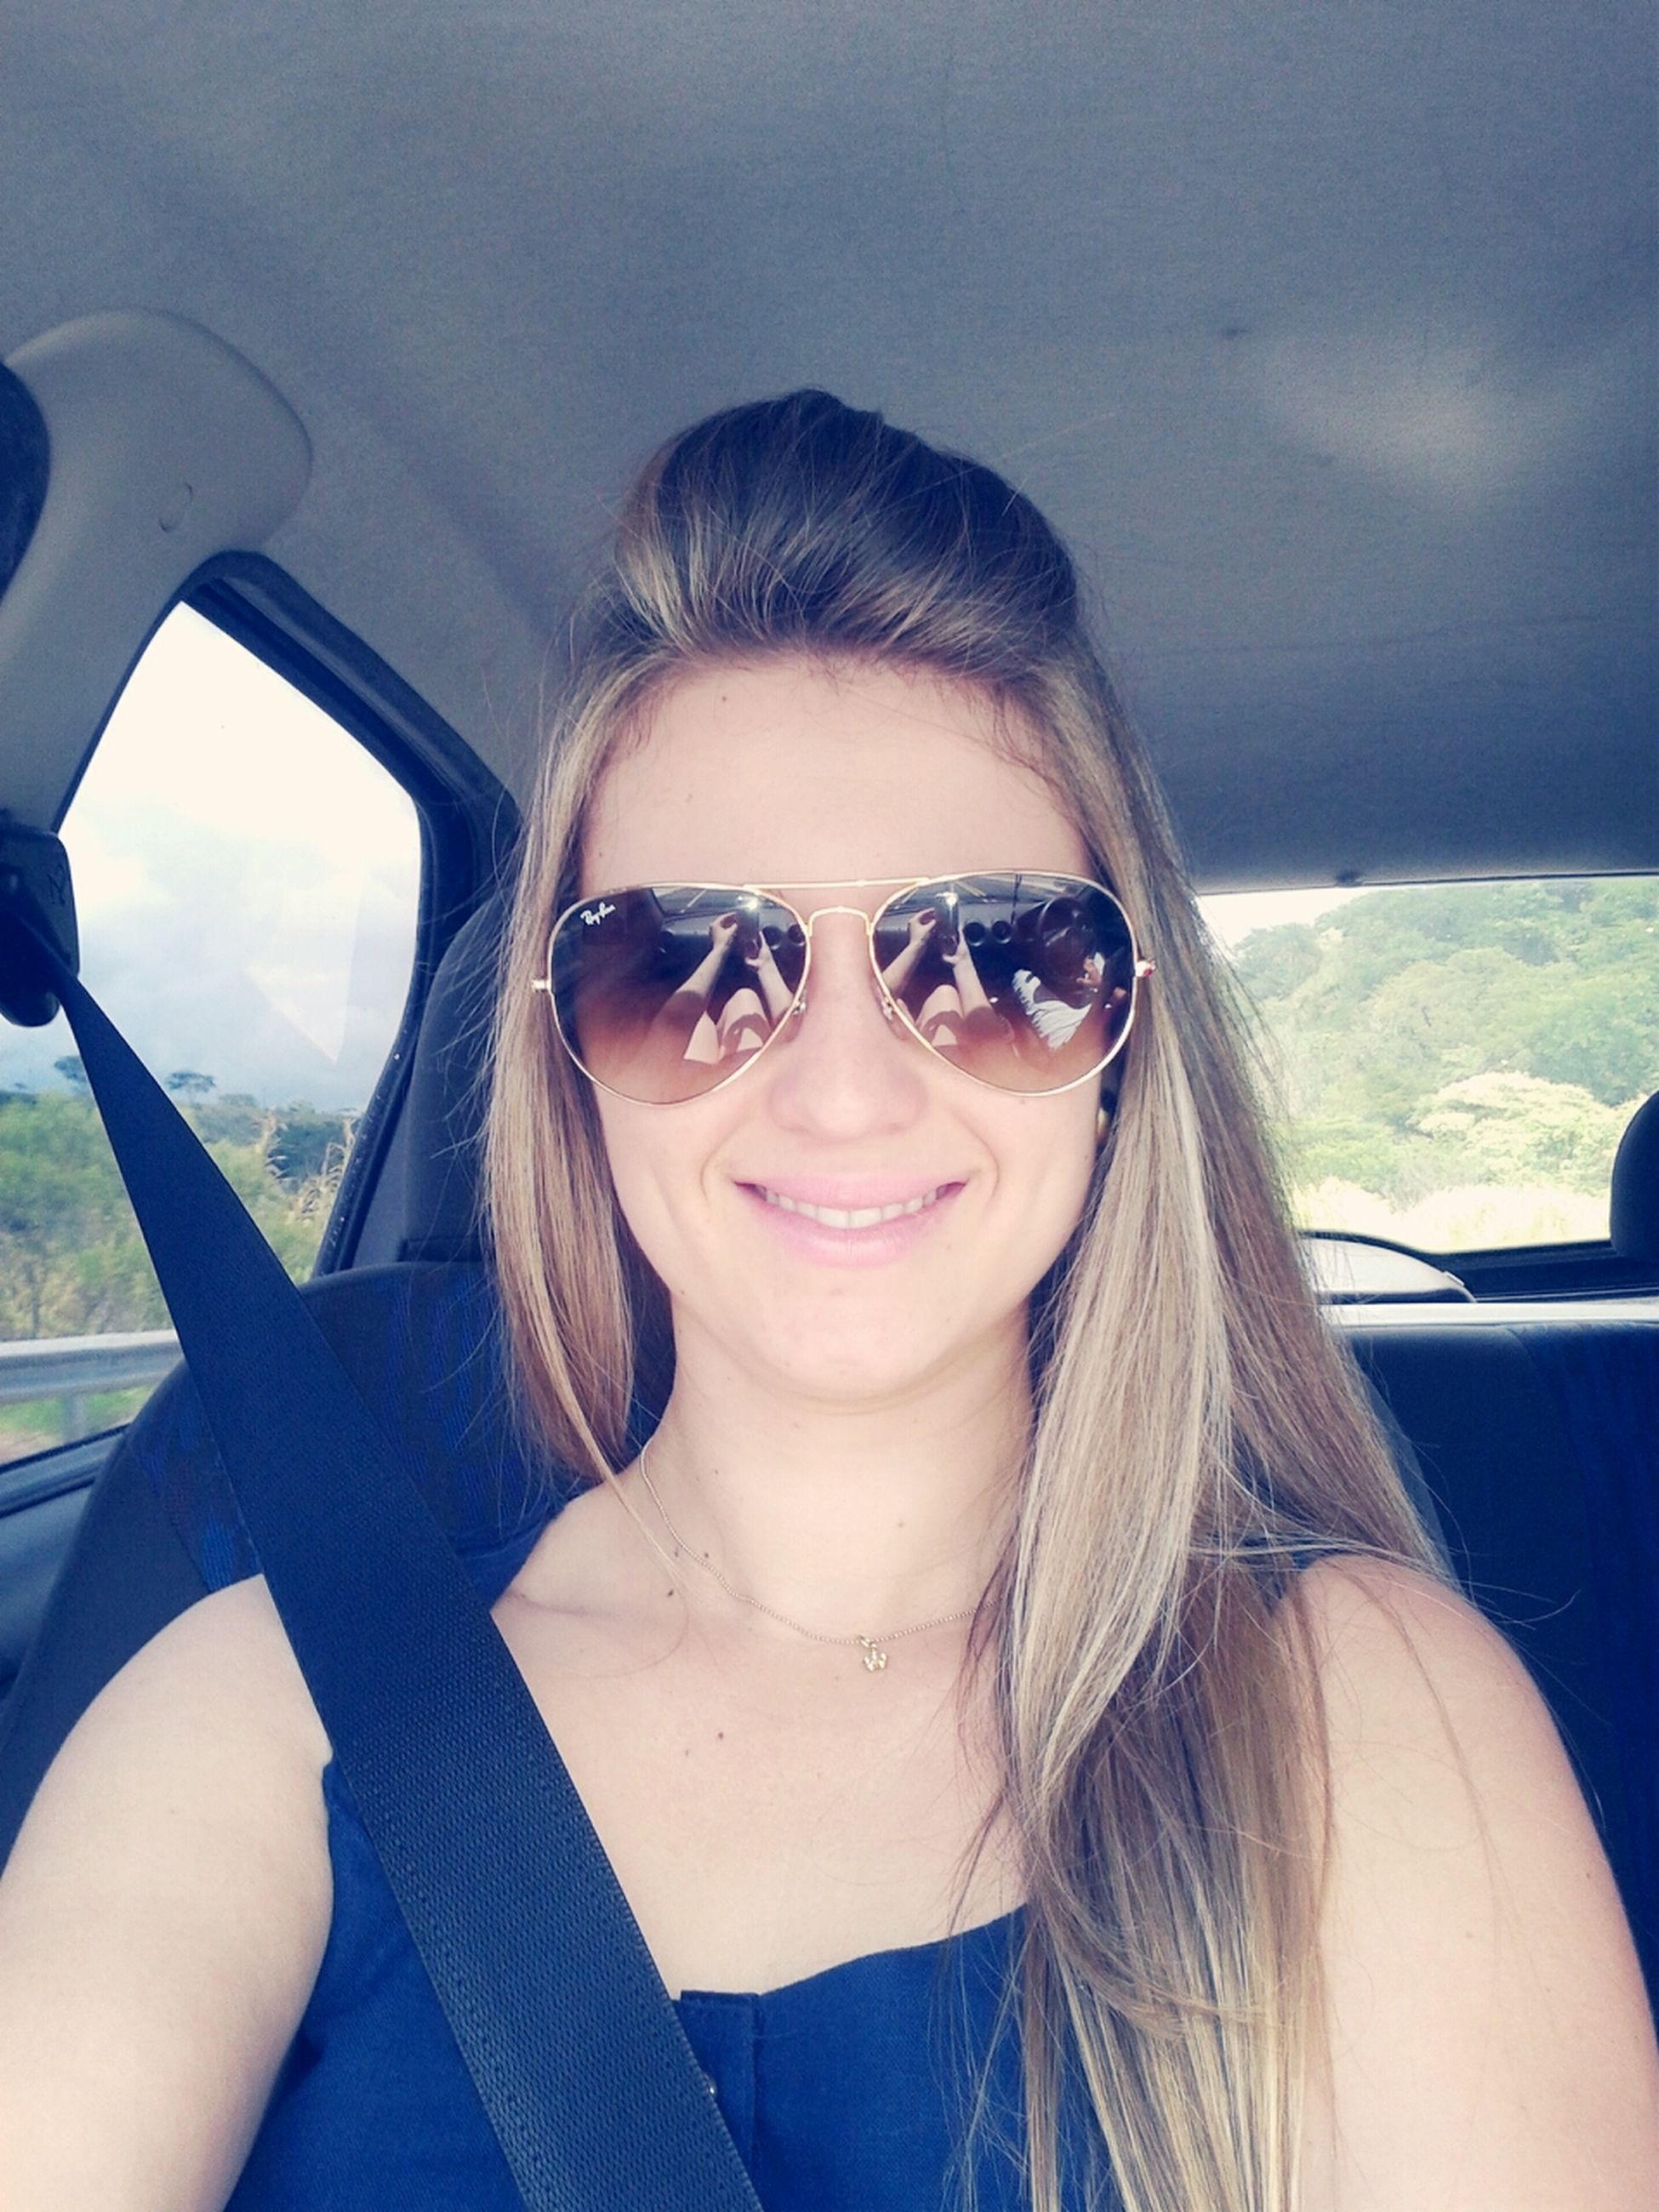 transportation, mode of transport, vehicle interior, sunglasses, young adult, portrait, person, lifestyles, looking at camera, leisure activity, car, travel, headshot, land vehicle, car interior, head and shoulders, young women, sunlight